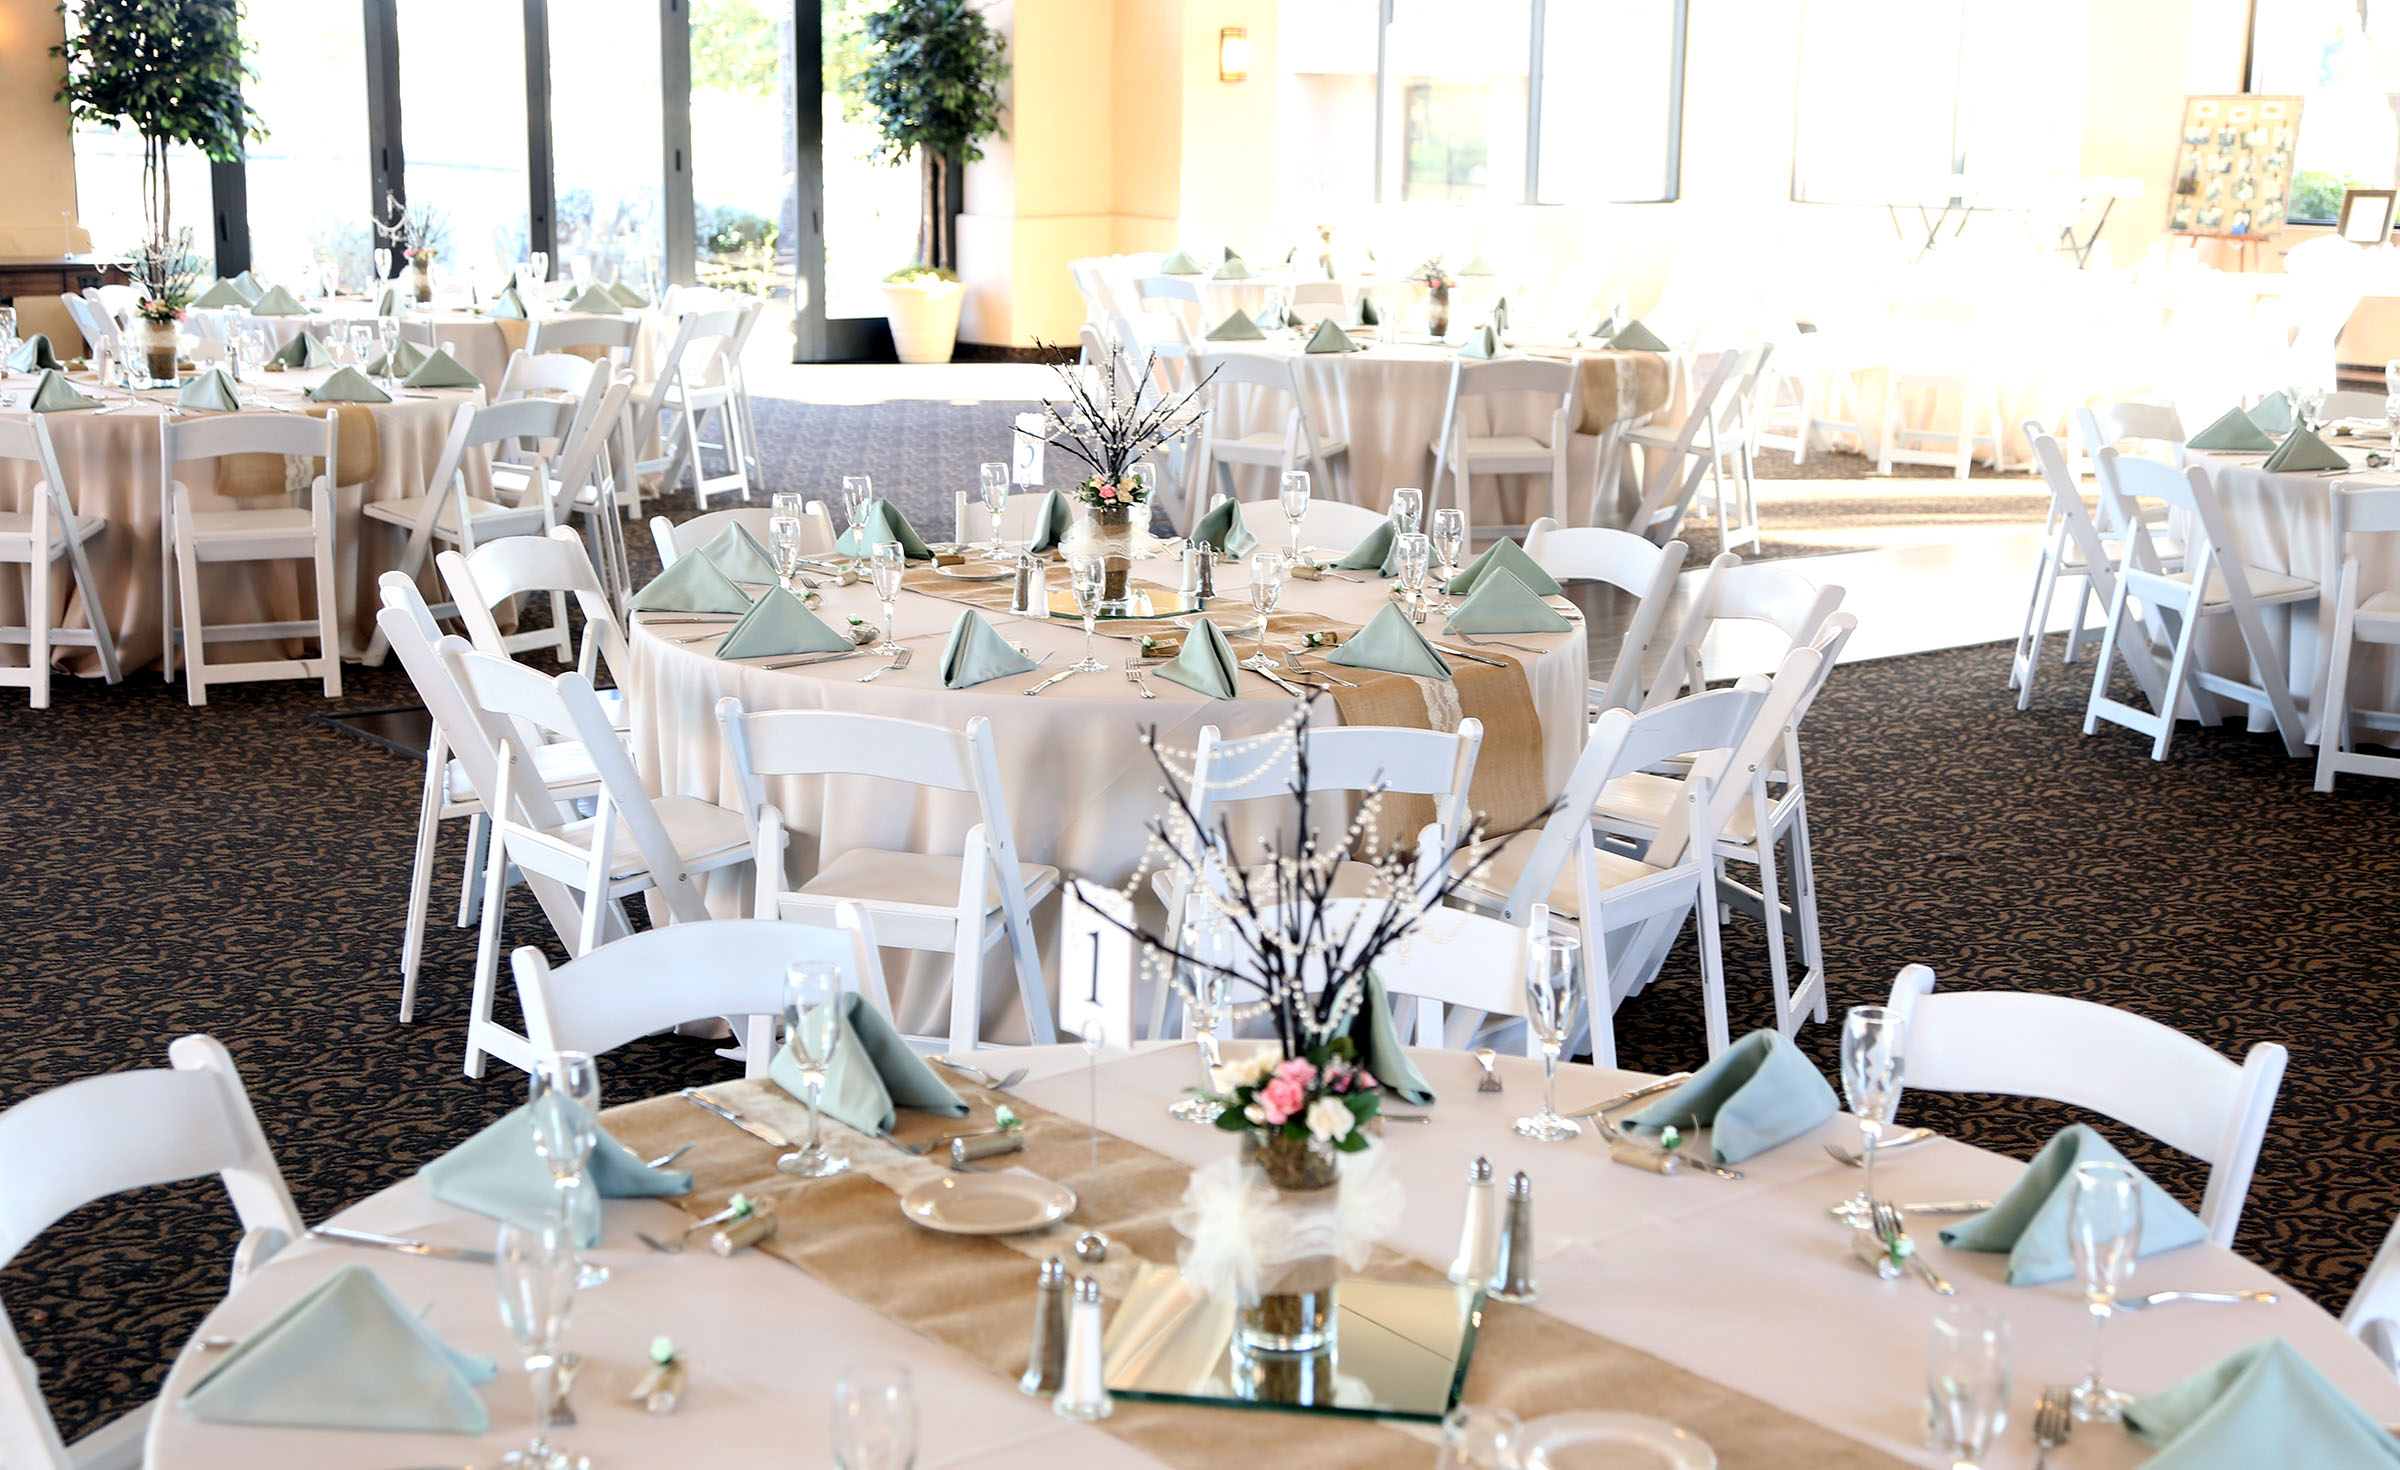 Floor-to-ceiling windows allow for amazing views and natural light - Palm Valley - Goodyear, Arizona - Maricopa County - Wedgewood Weddings